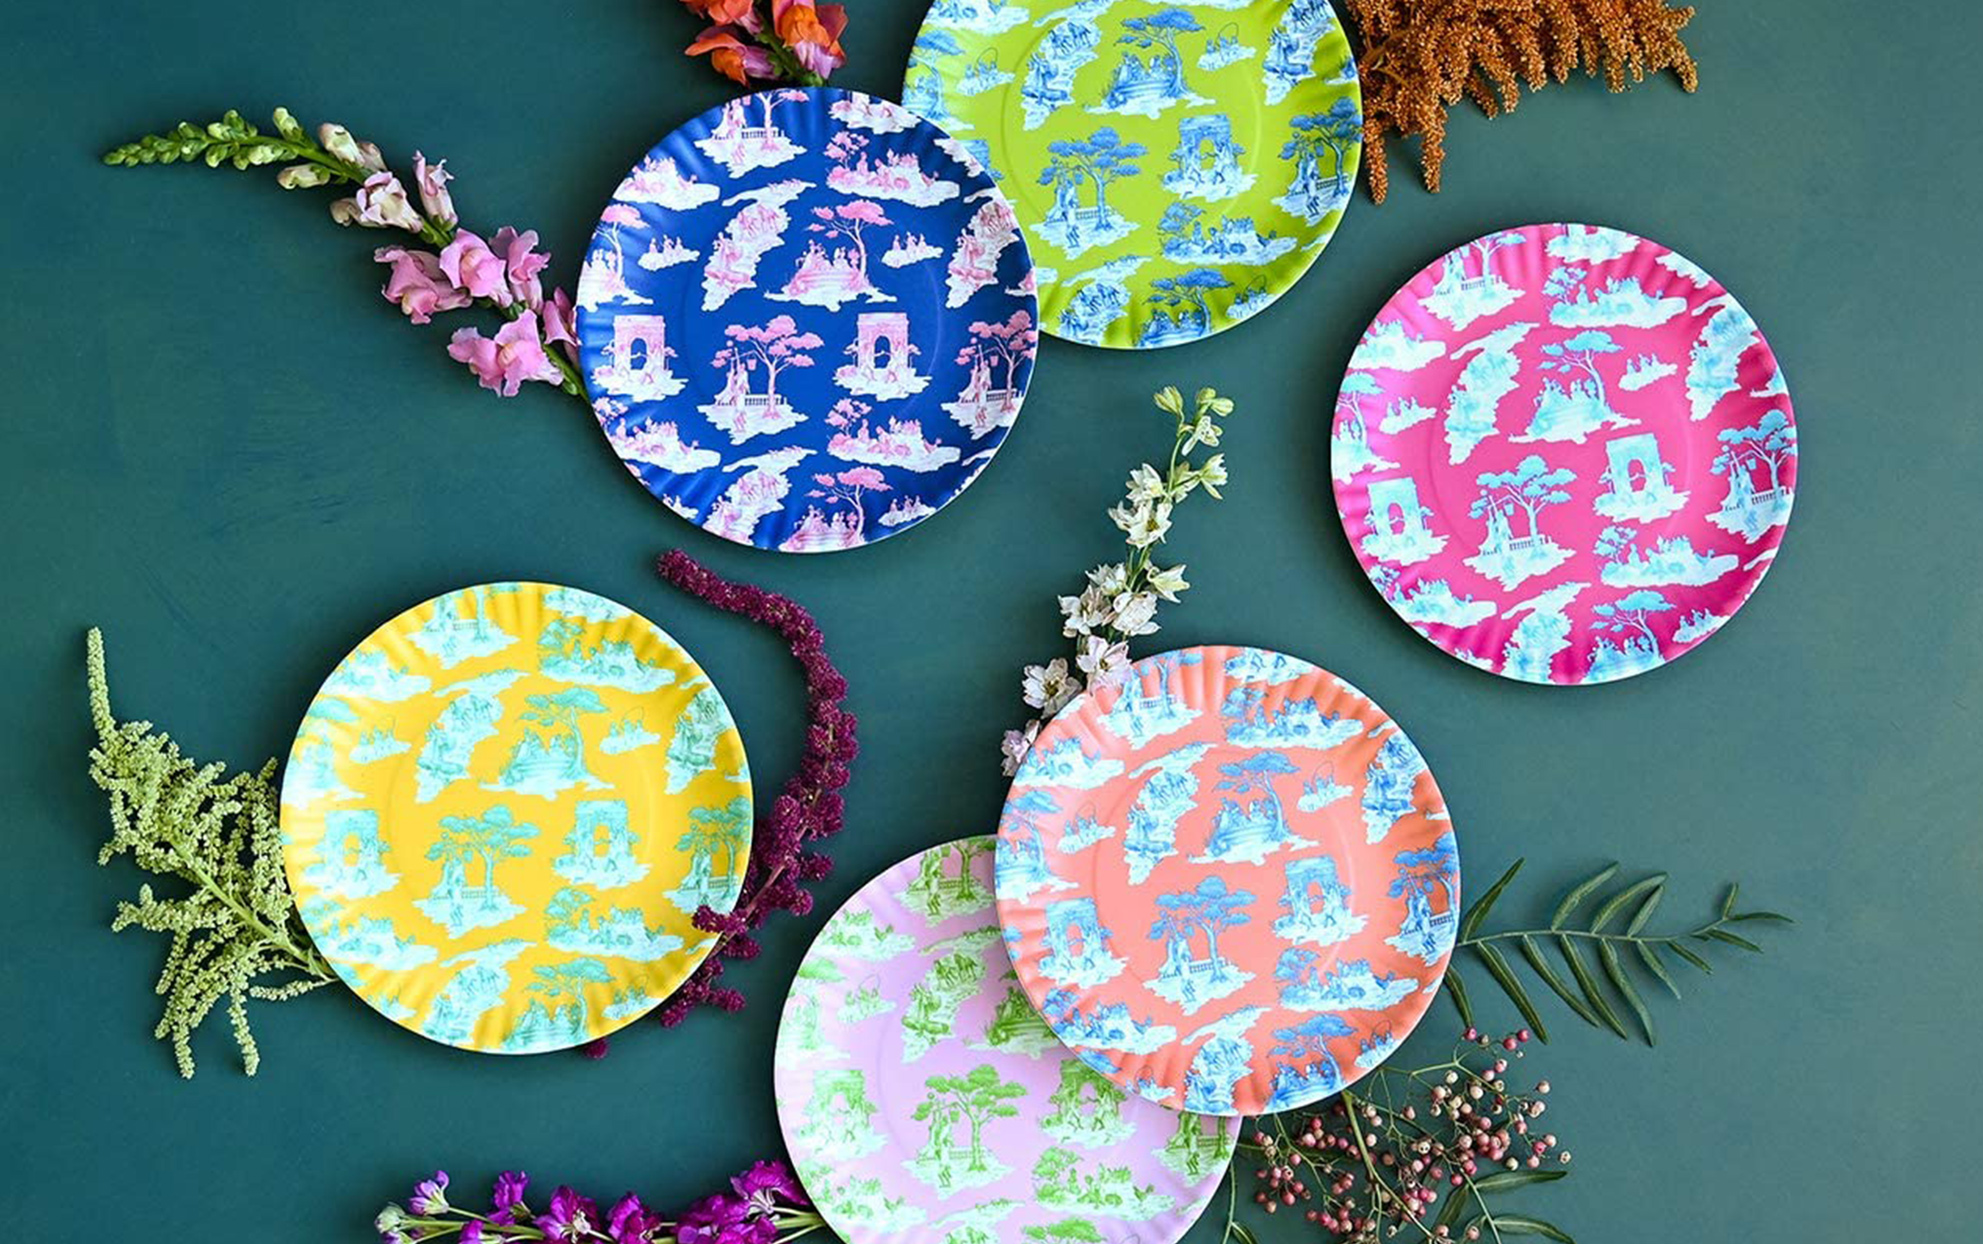 Colorful Toile patterned plates on a teal background